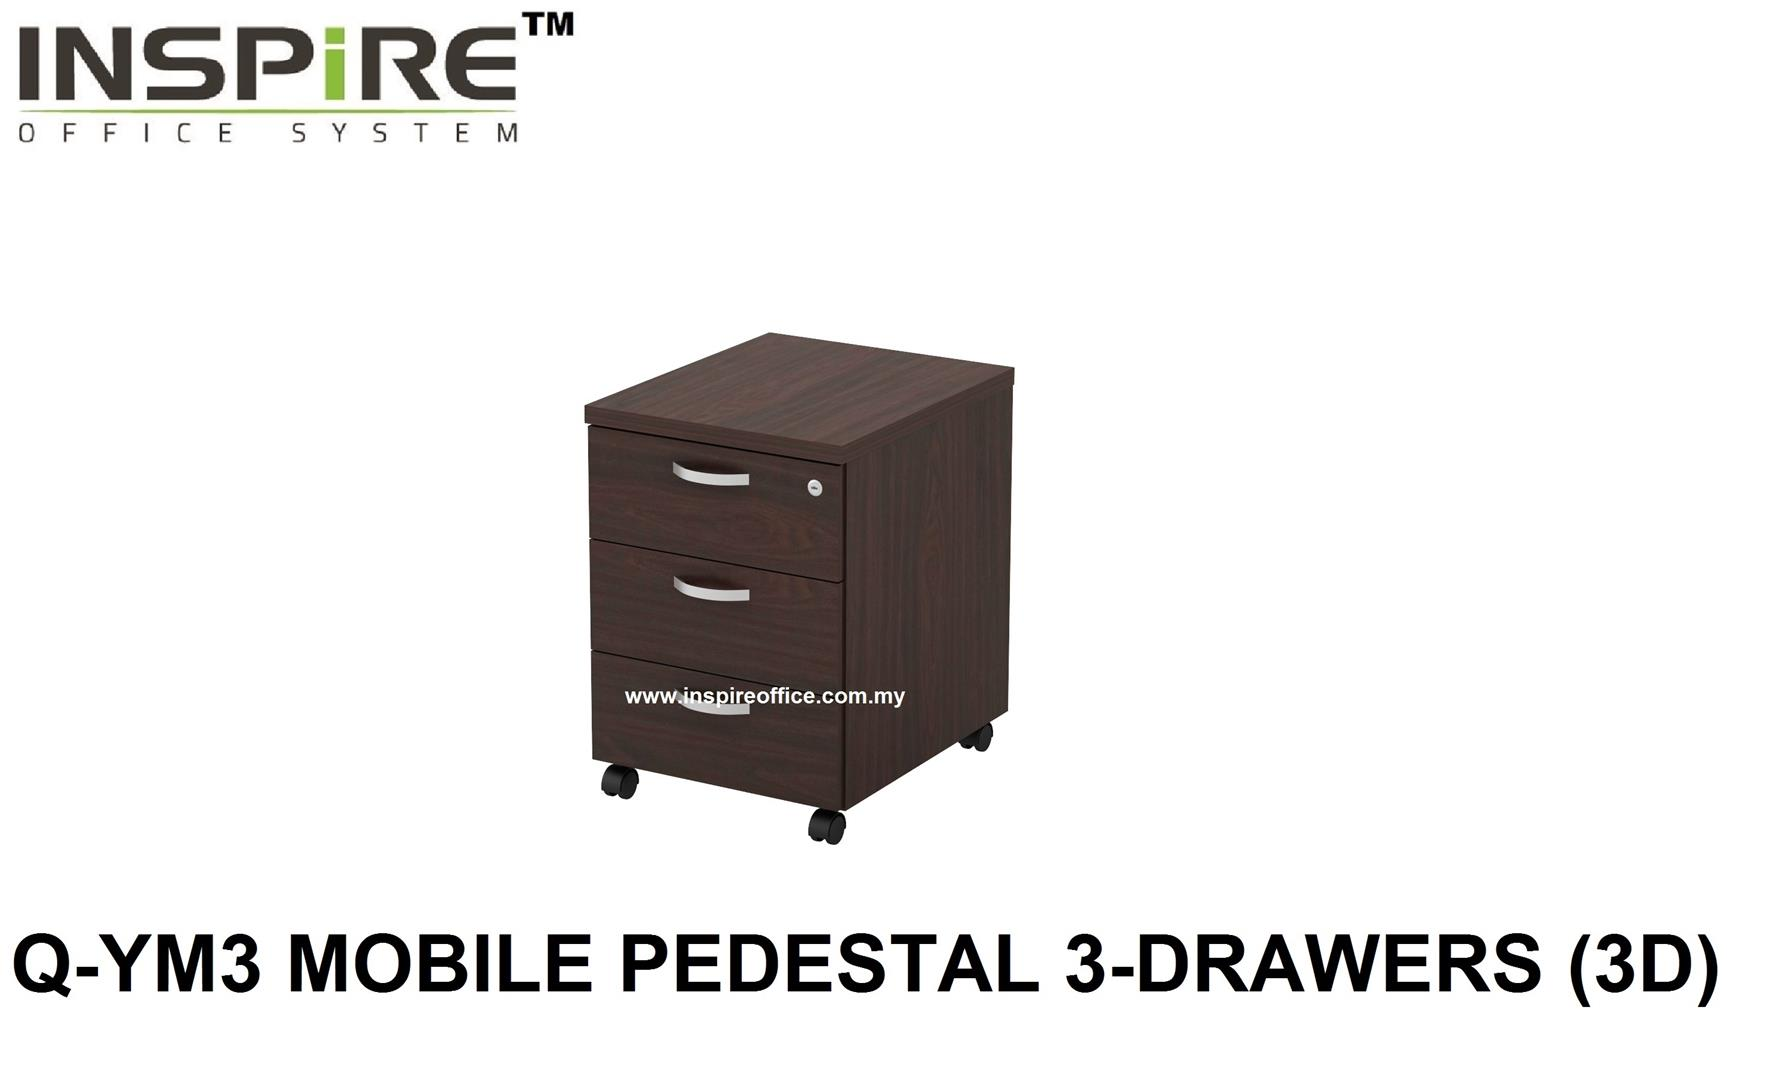 QUINN SERIES Q-YM3 MOBILE PEDESTAL 3-DRAWERS (3D)